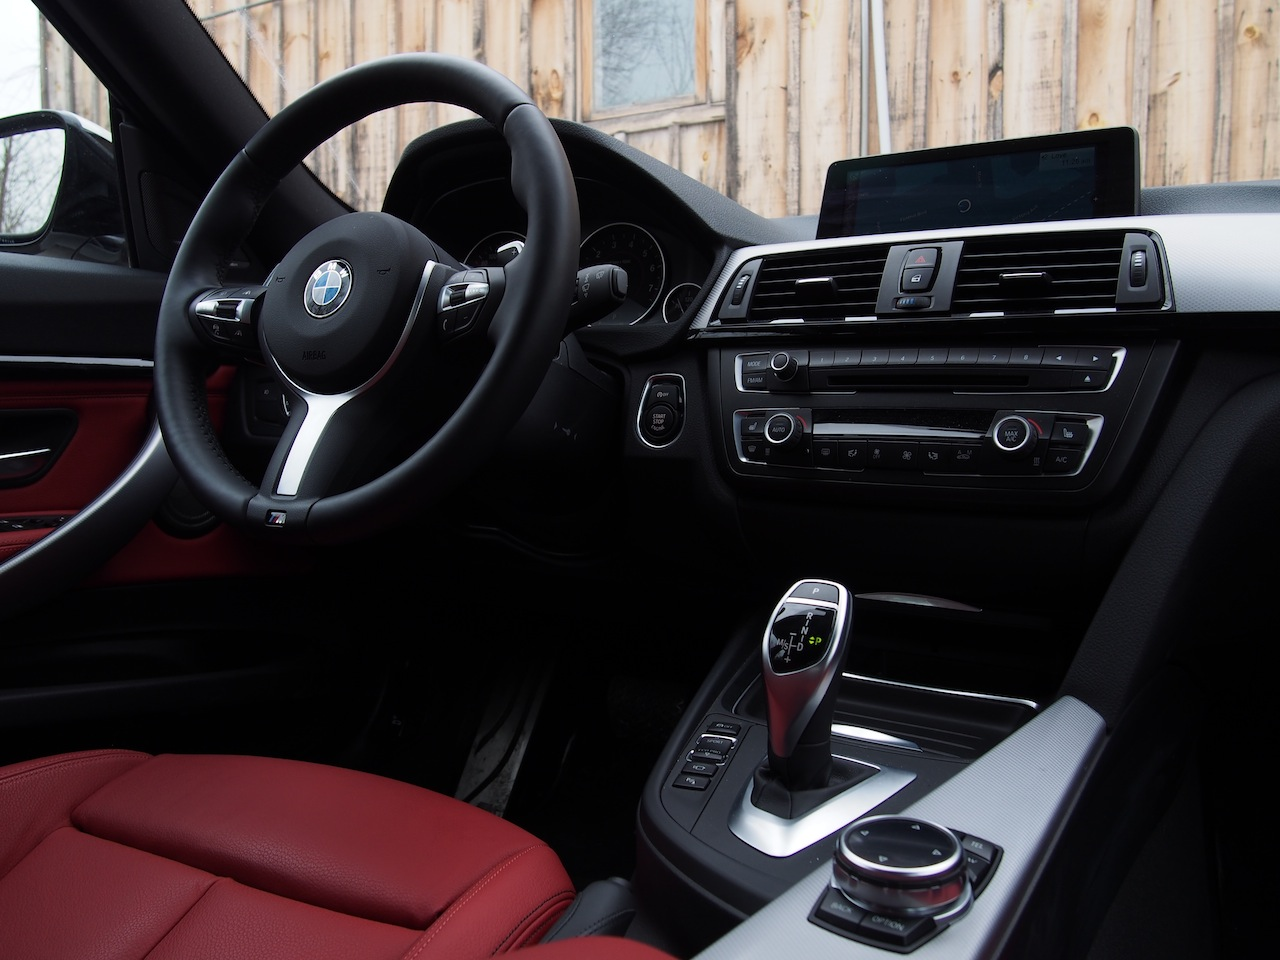 300 Hp Cars >> 2014 BMW 335i GT xDrive Review - Cars, Photos, Test Drives, and Reviews | Canadian Auto Review